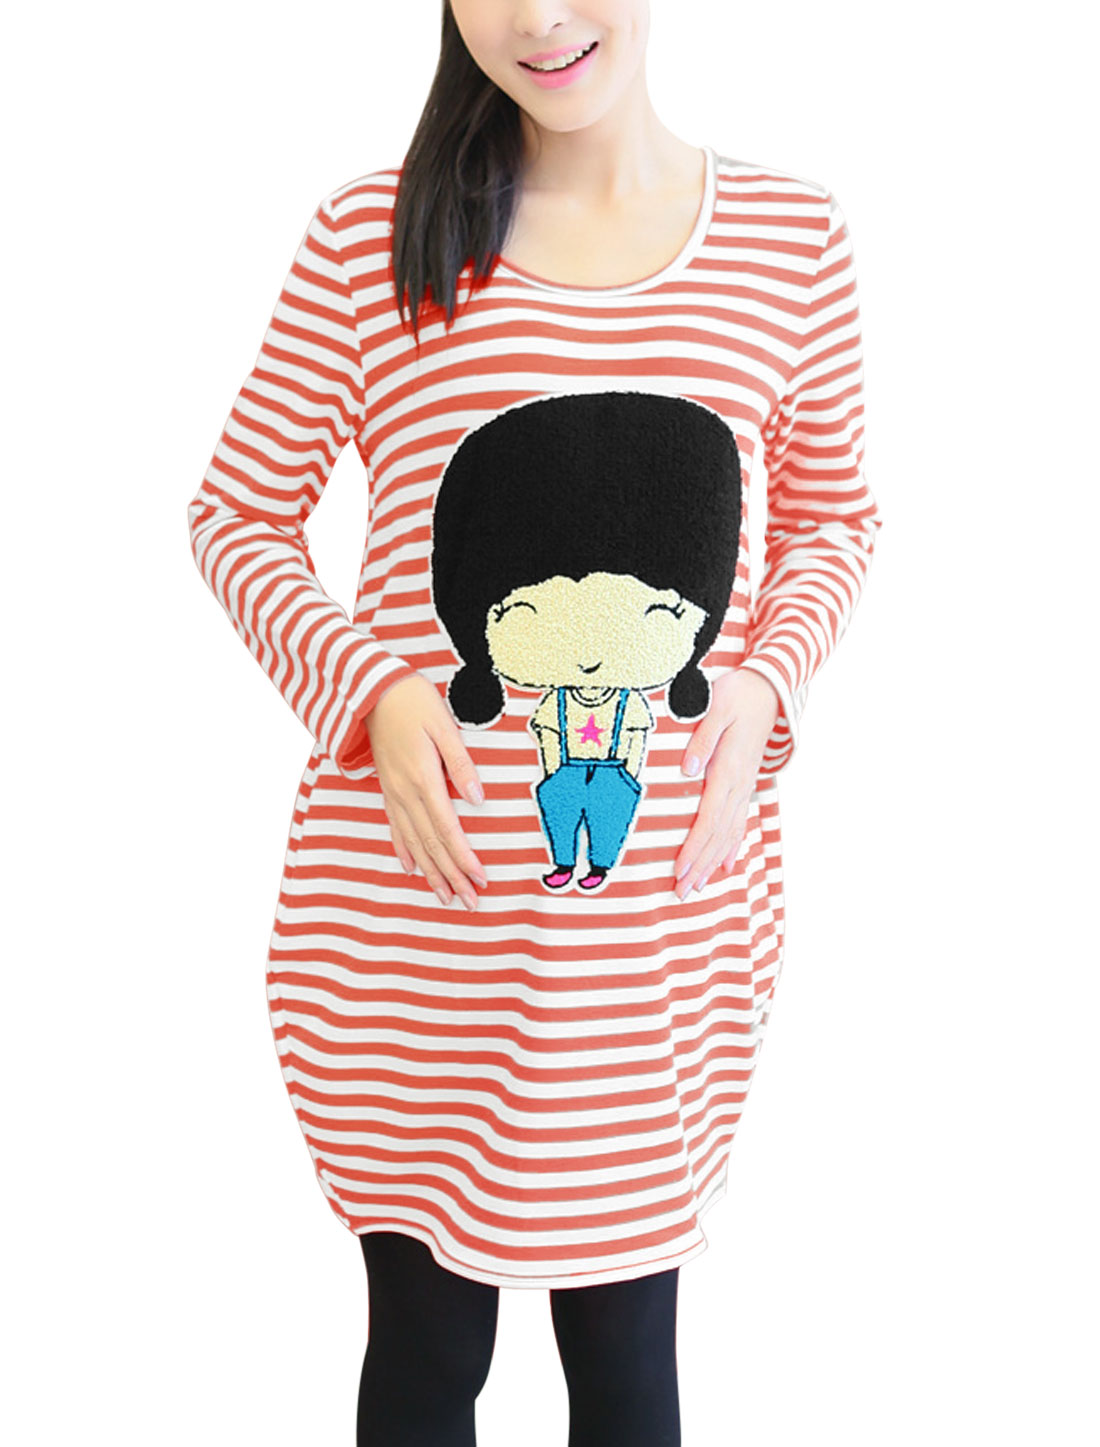 Maternity Round Neck Striped Cartoon Applique Soft Tunic Top Orange White M